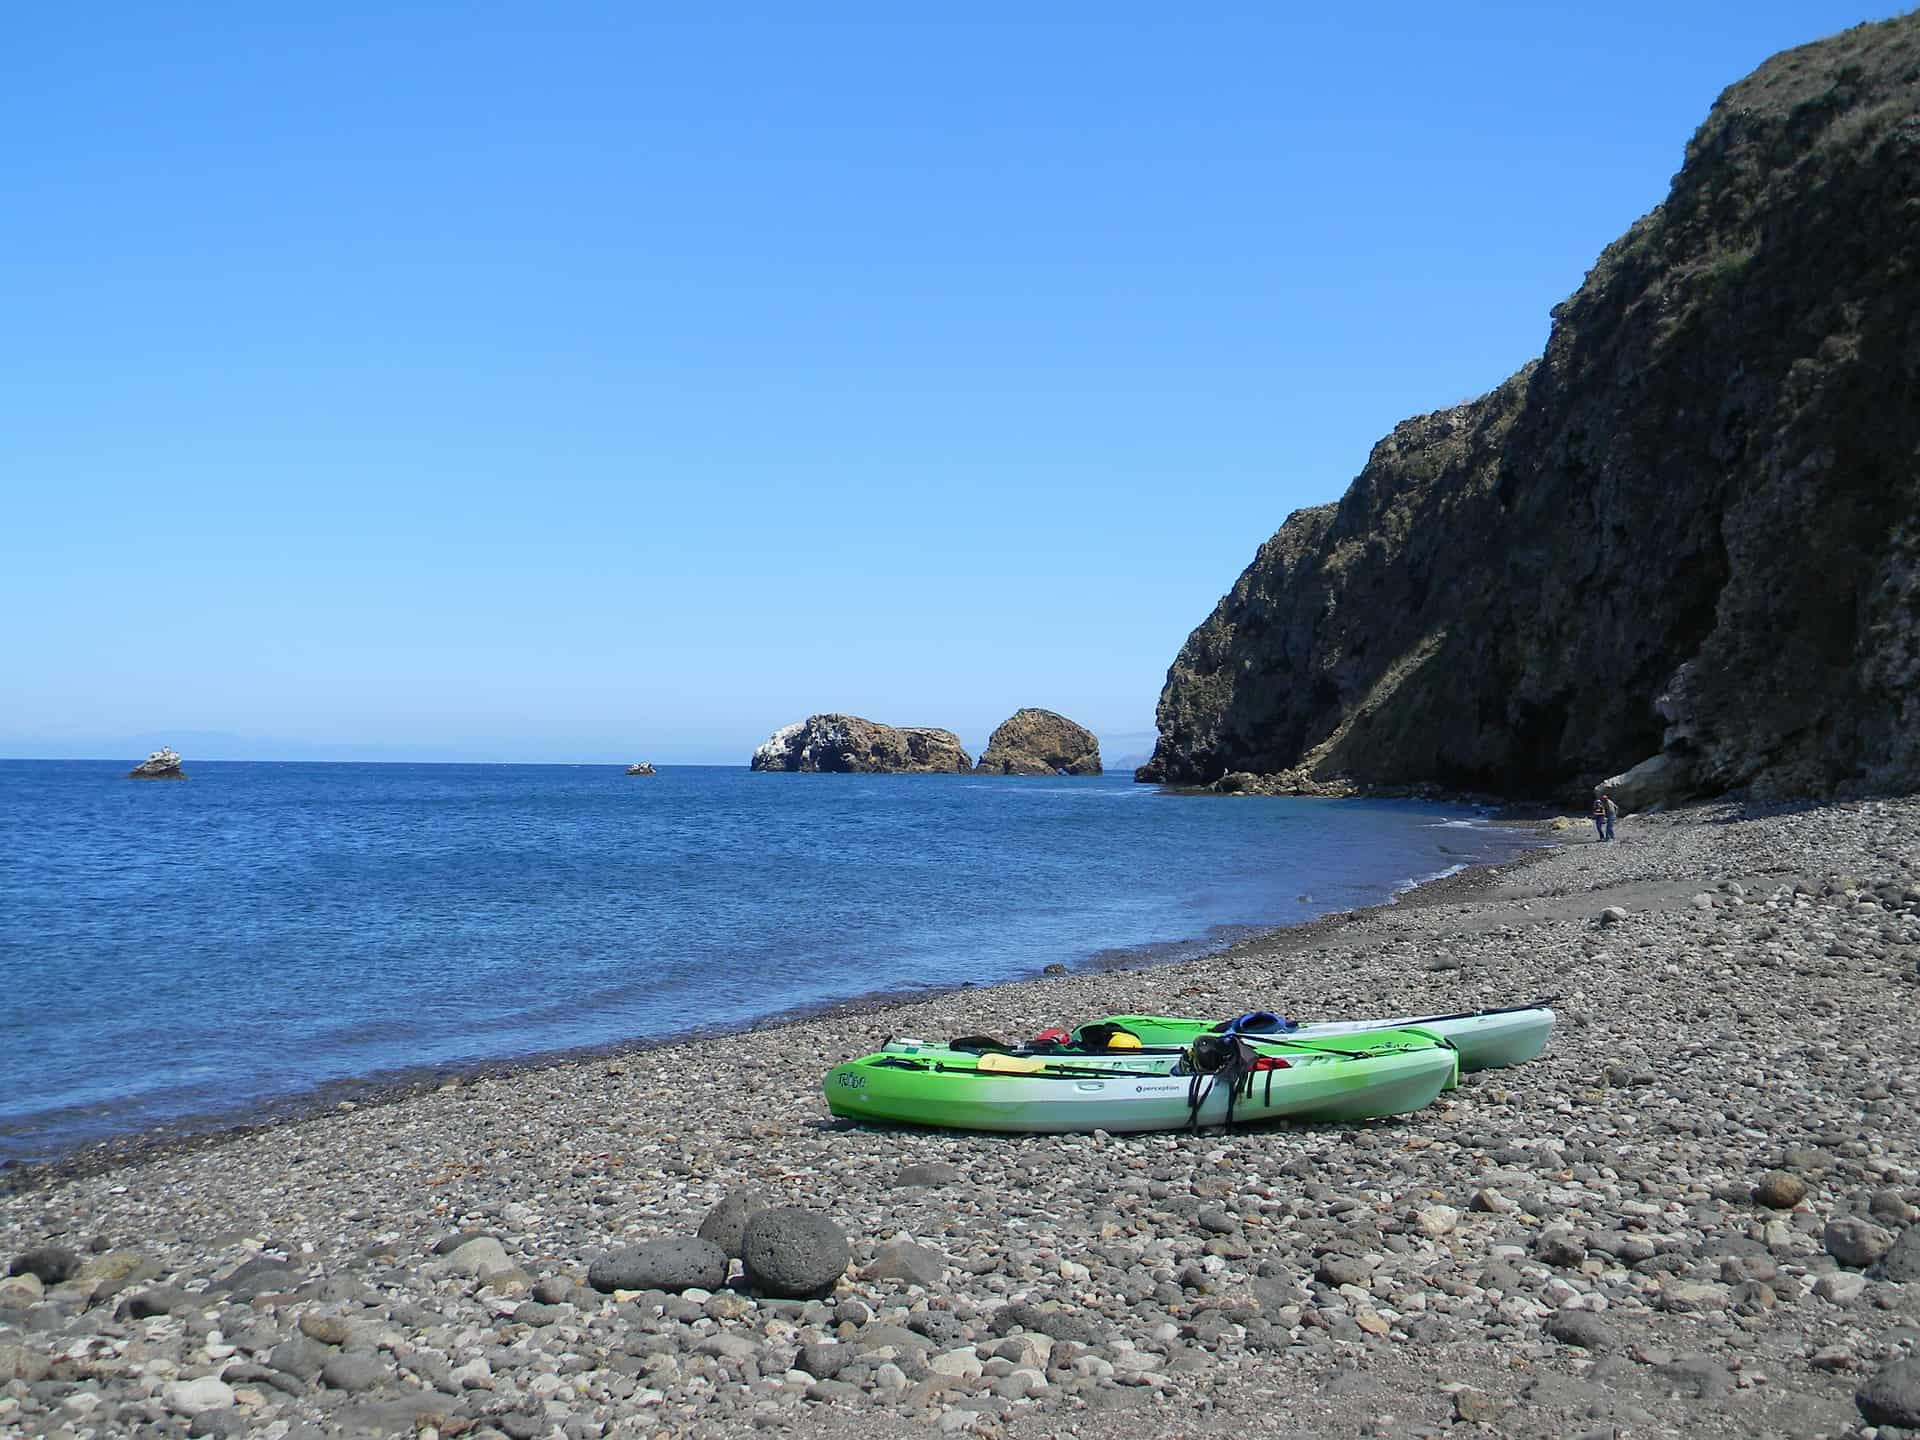 Sit-on-top kayaks on the beach